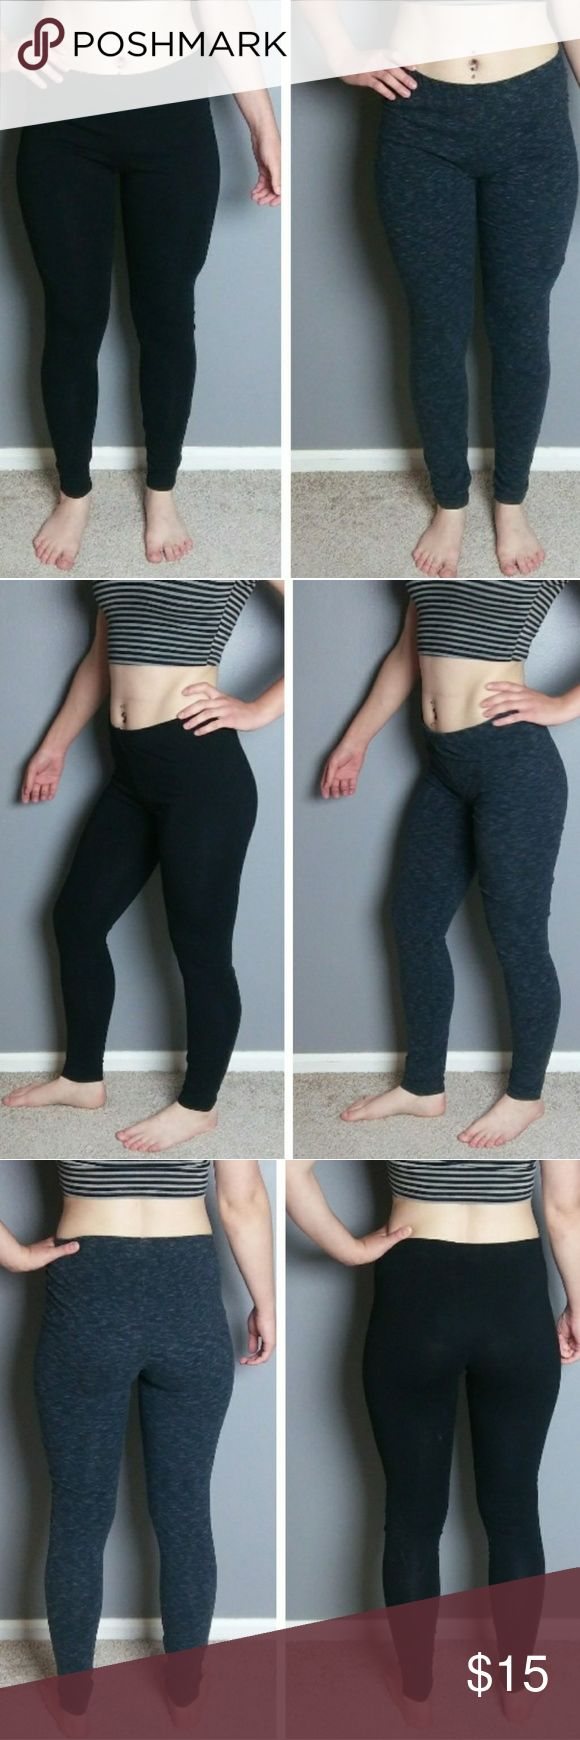 Lot of 2 - Divided (H&M) leggings Includes two pairs of leggings - one black, one dark heather / charcoal grey. Both same size / cut / fit.  Grey: Made in Cambodia.  96% cotton, 4% spandex.  Black: Made in India.  95% cotton, 5% spandex.   Both in great used shape with no pilling, stretching, holes, or stains. I am able to separate the bundle by request. Divided Pants Leggings